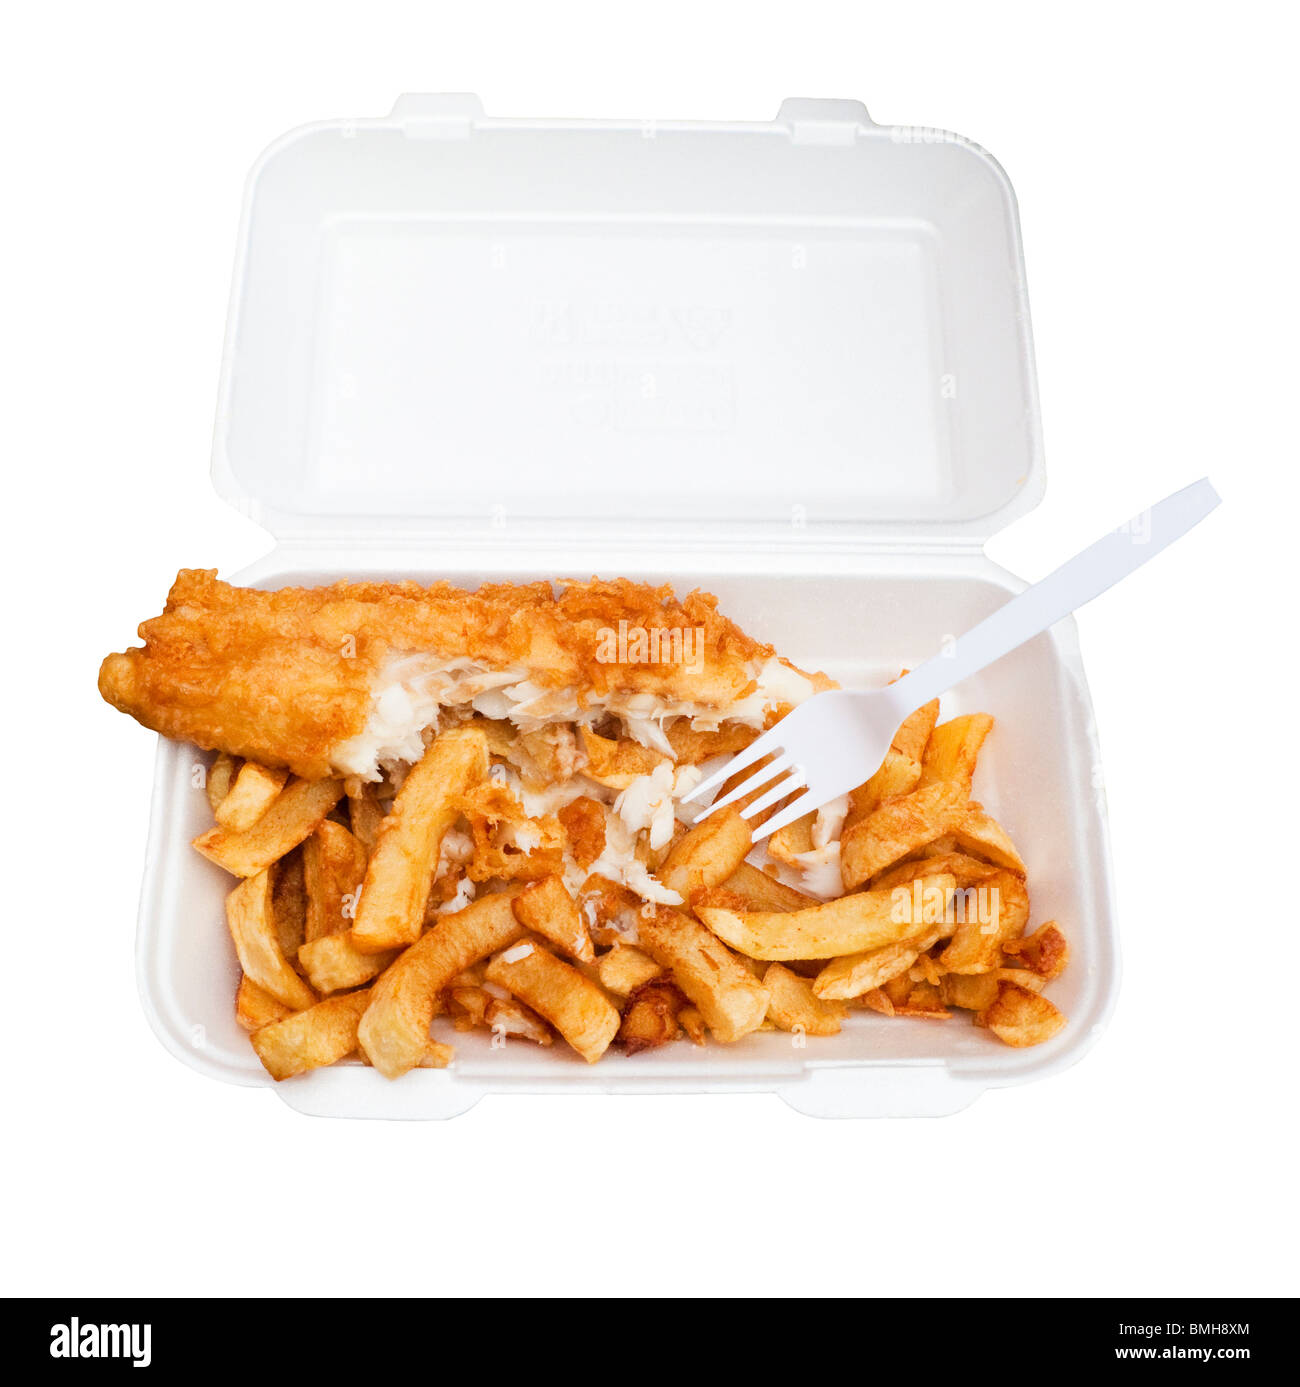 Fish and Chips in a plastic takeaway container half eaten - on white background - Stock Image